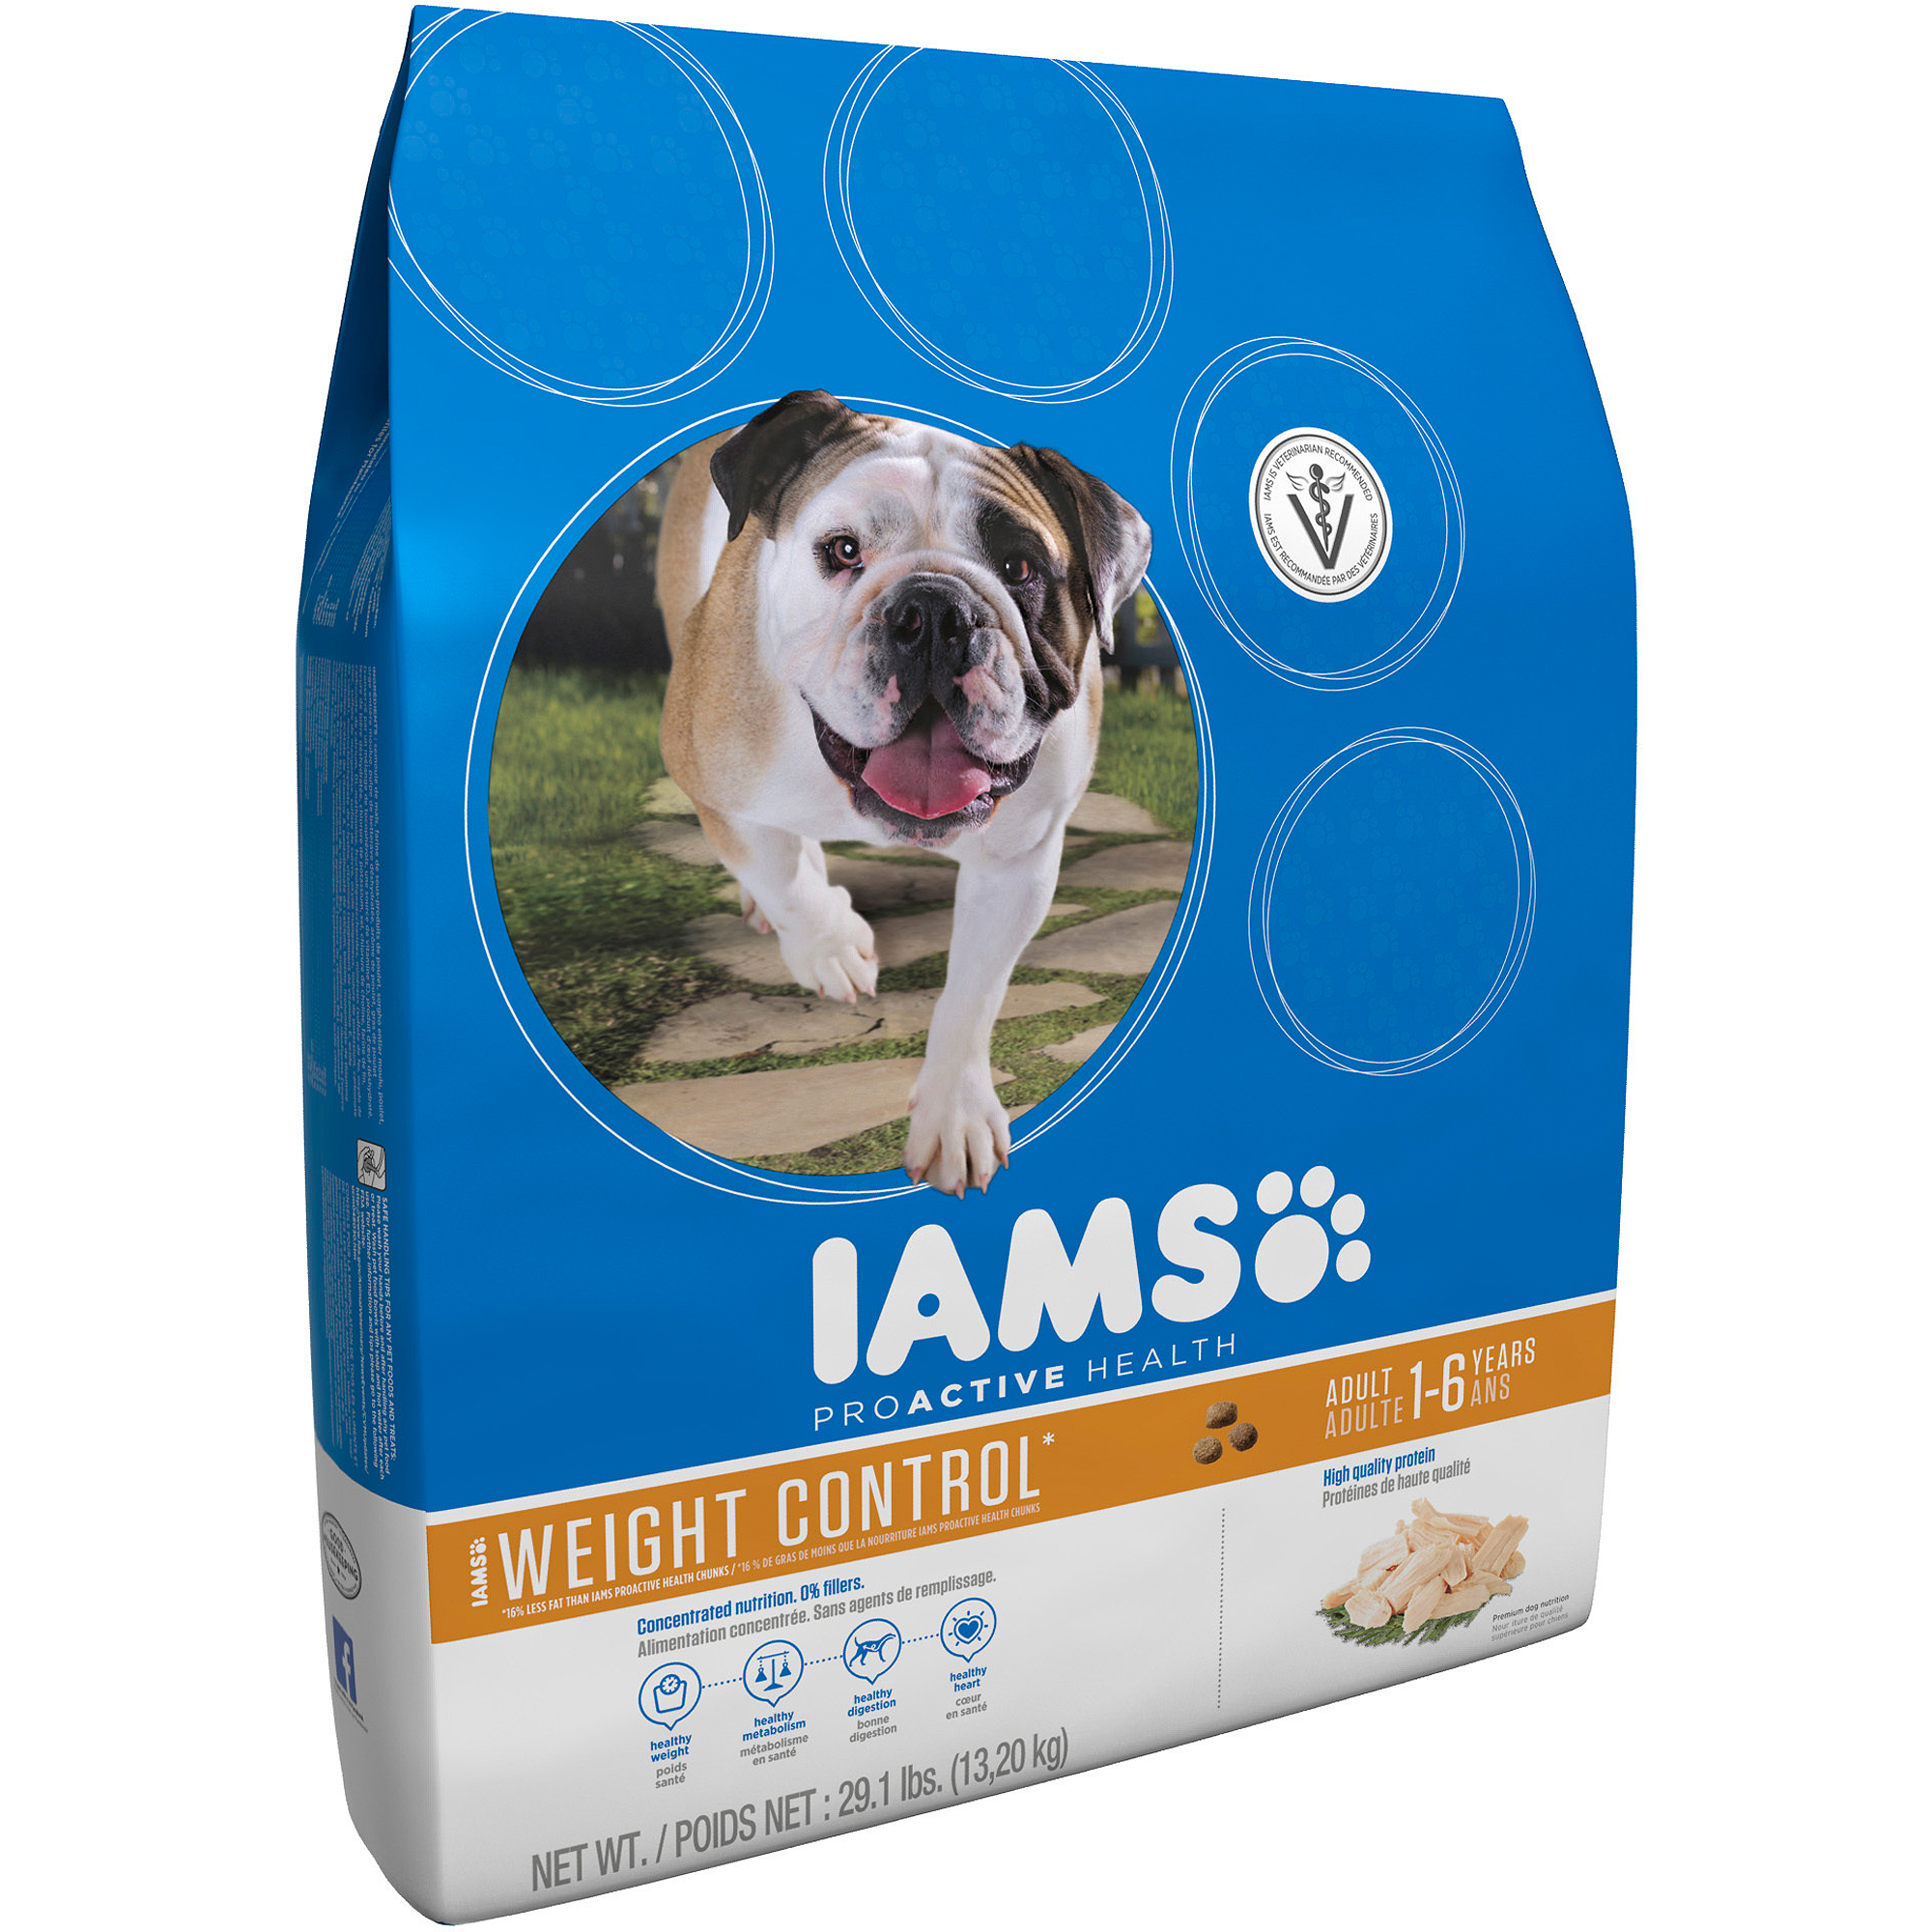 Iams ProActive Health Adult Weight Control Premium Dog Food 29.1 lbs